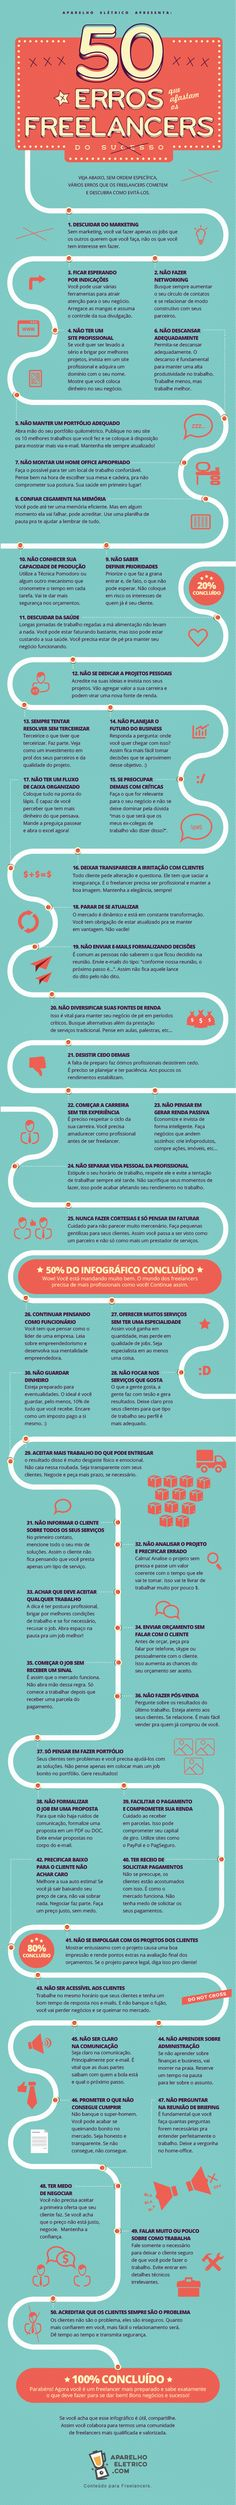 Infographic Design Inspiration - 50 erros que afastam os freelancers do sucesso - CoDesign Magazine Web Design, Graphic Design Tips, Marketing Digital, Design Thinking, Success, Knowledge, Typography, Business Marketing, Photoshop